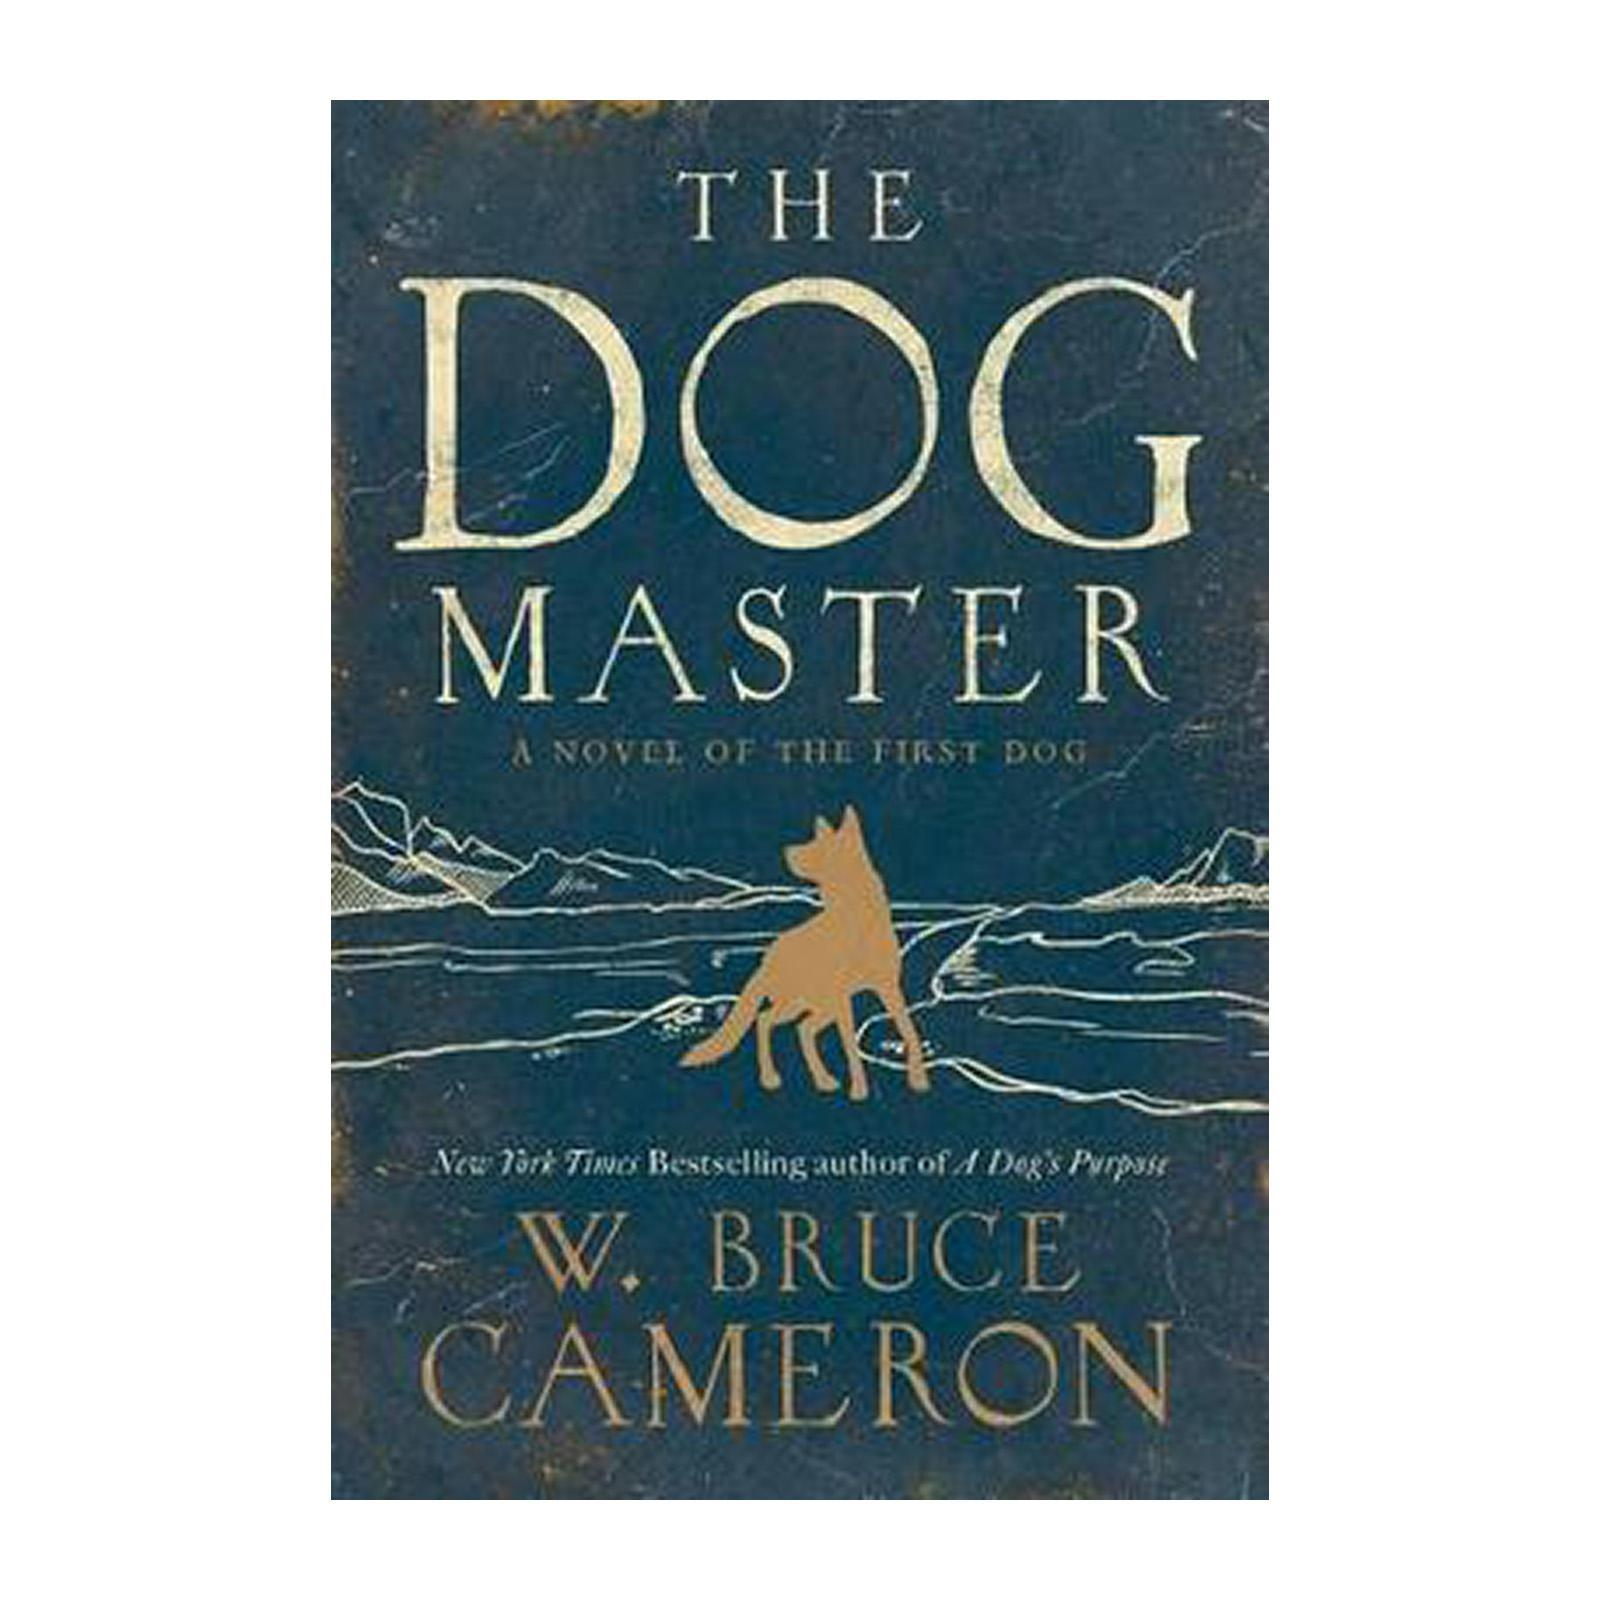 The Dog Master: A Novel Of The First Dog (Paperback)